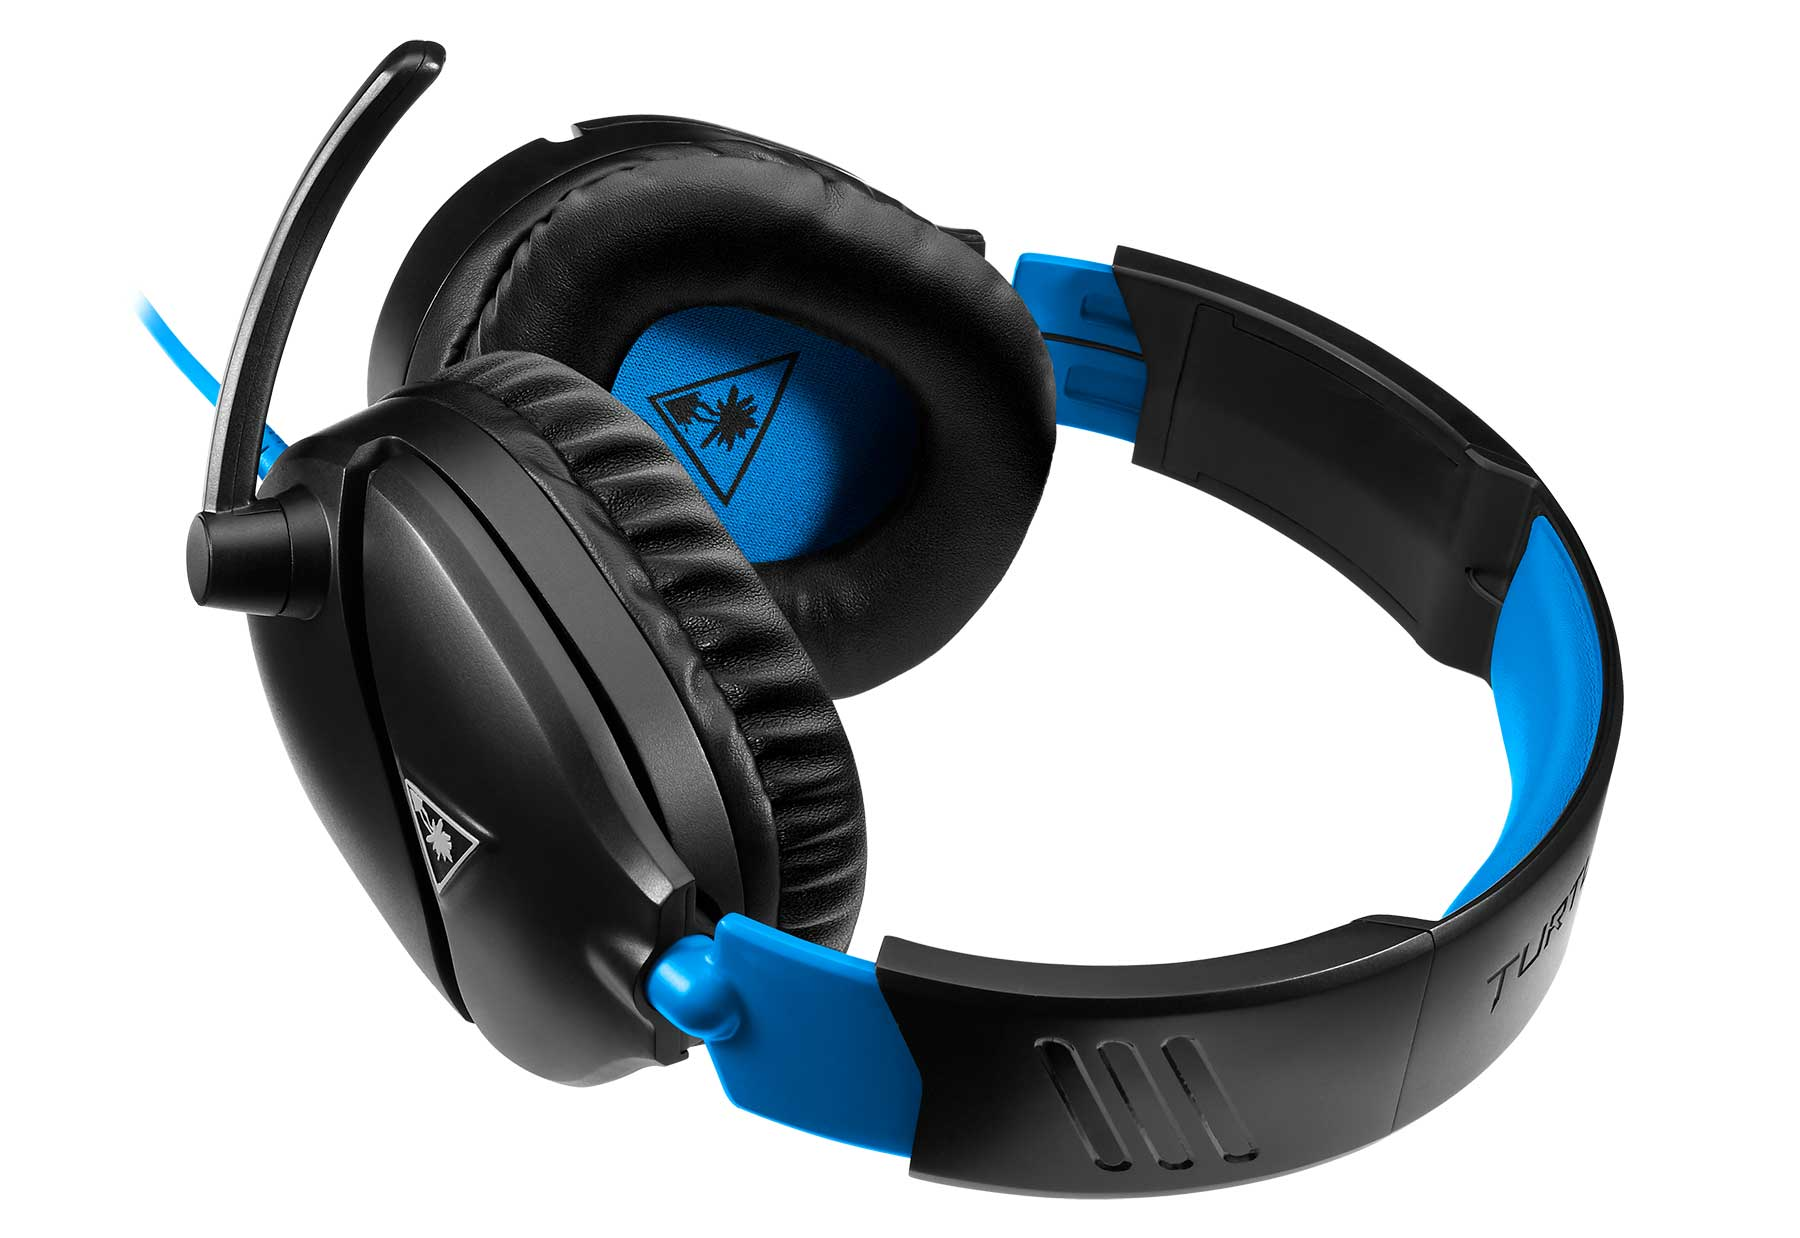 Ostergeschenk-Idee: Das neue Turtle Beach Recon 70 Gaming Headset Turtle-Beach-Recon-70-Gaming-Headset_03